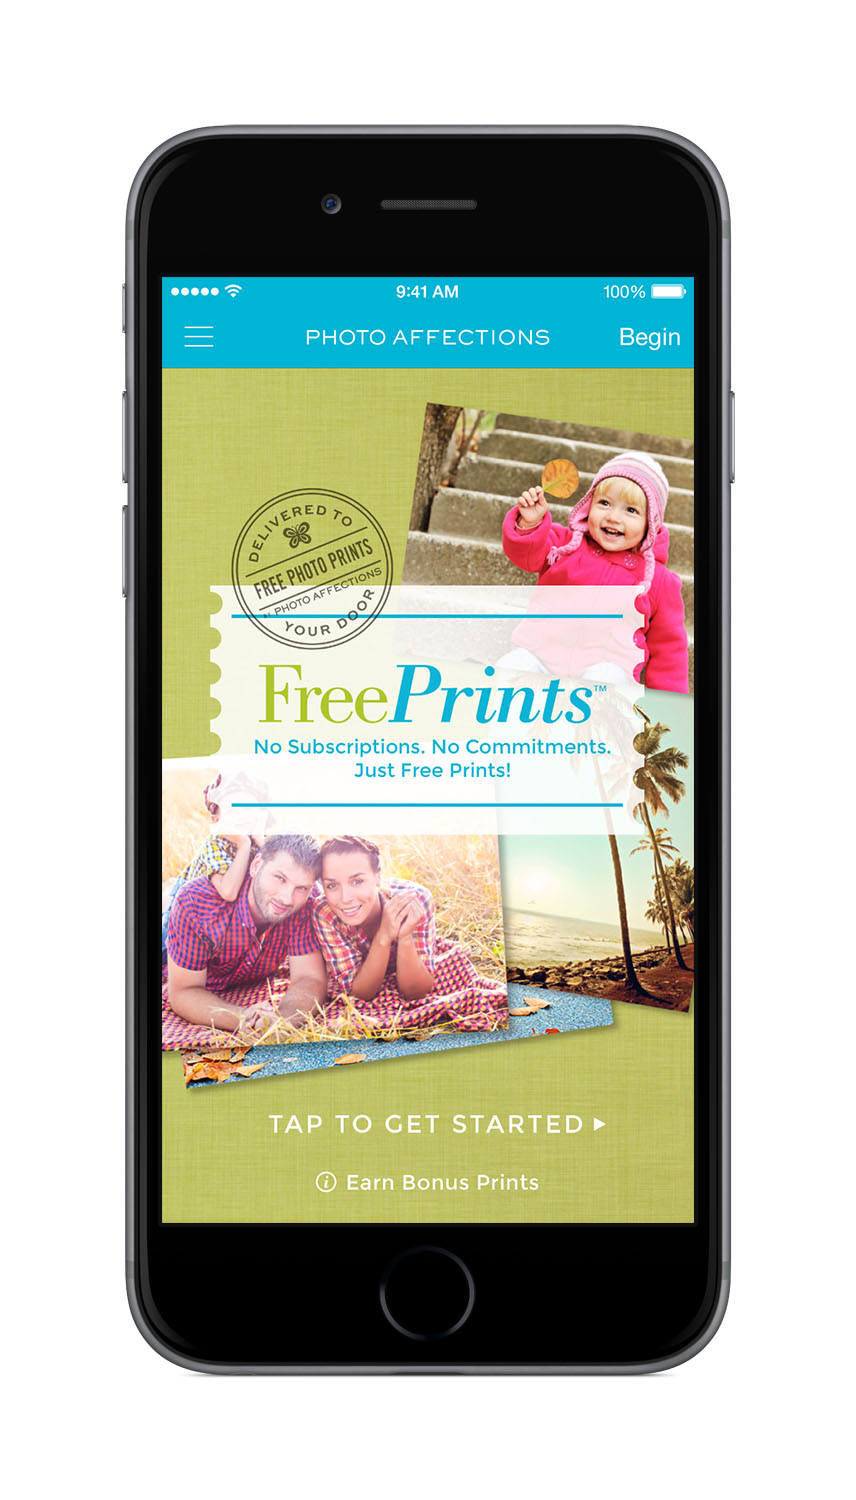 Freeprints Mobile App Optimized For Ios 8 Takes Advantage Of Apple Pay